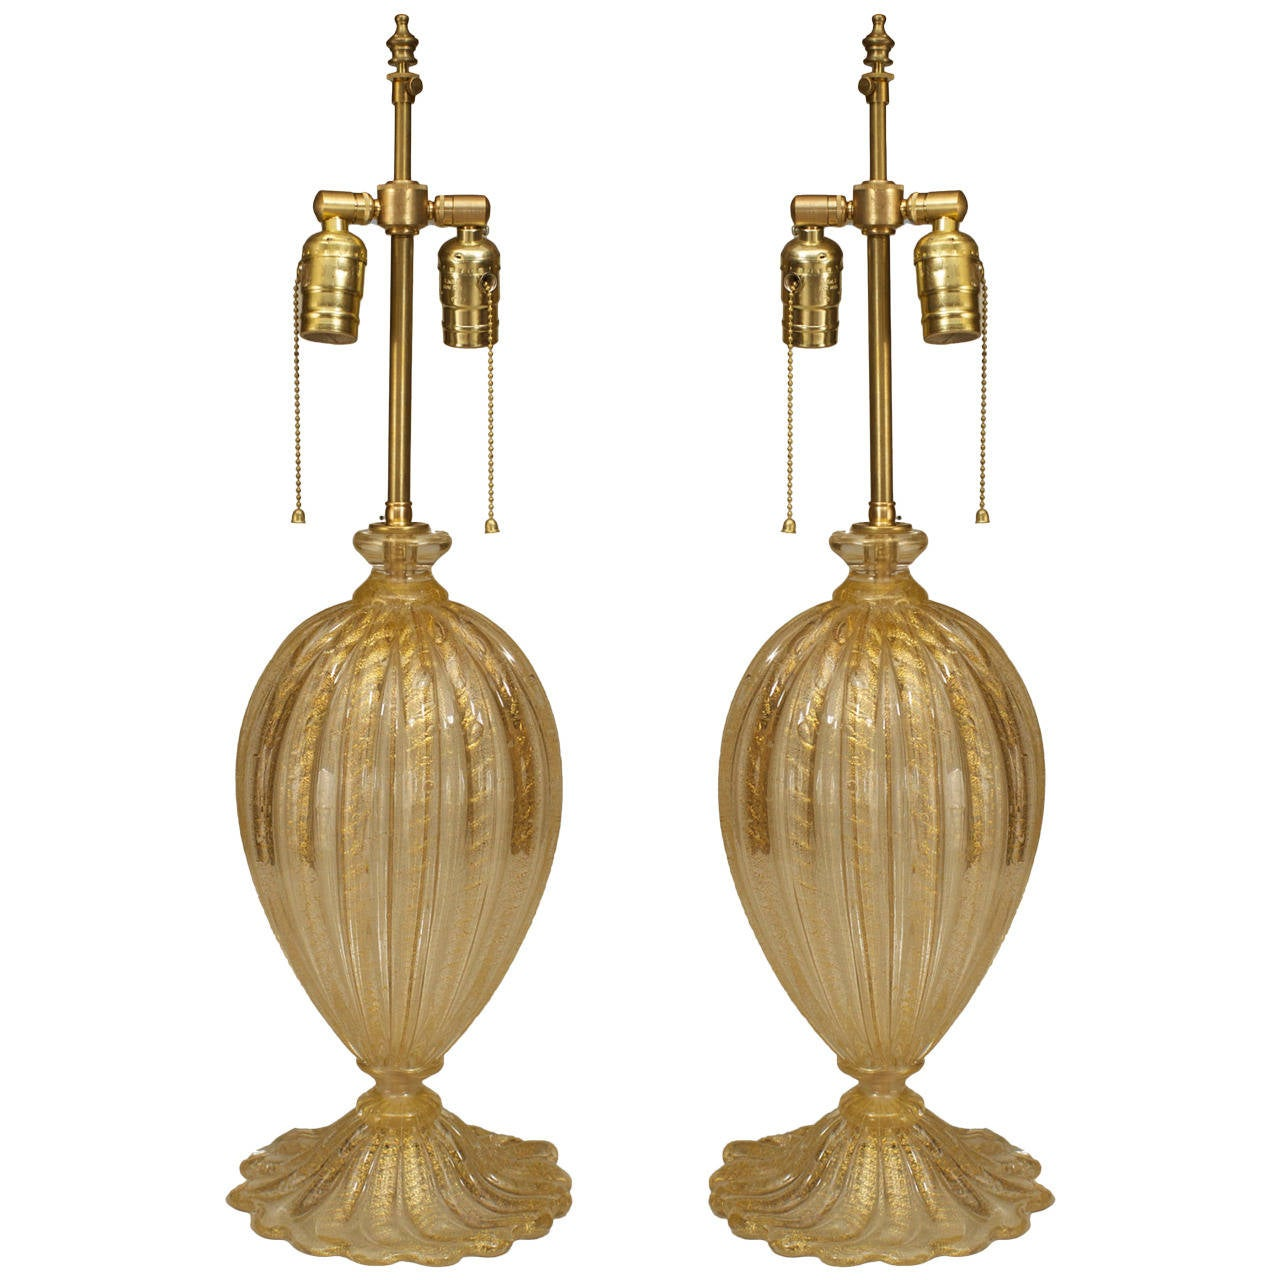 Pair of Modern Italian Gold Dusted Murano Glass Table Lamps